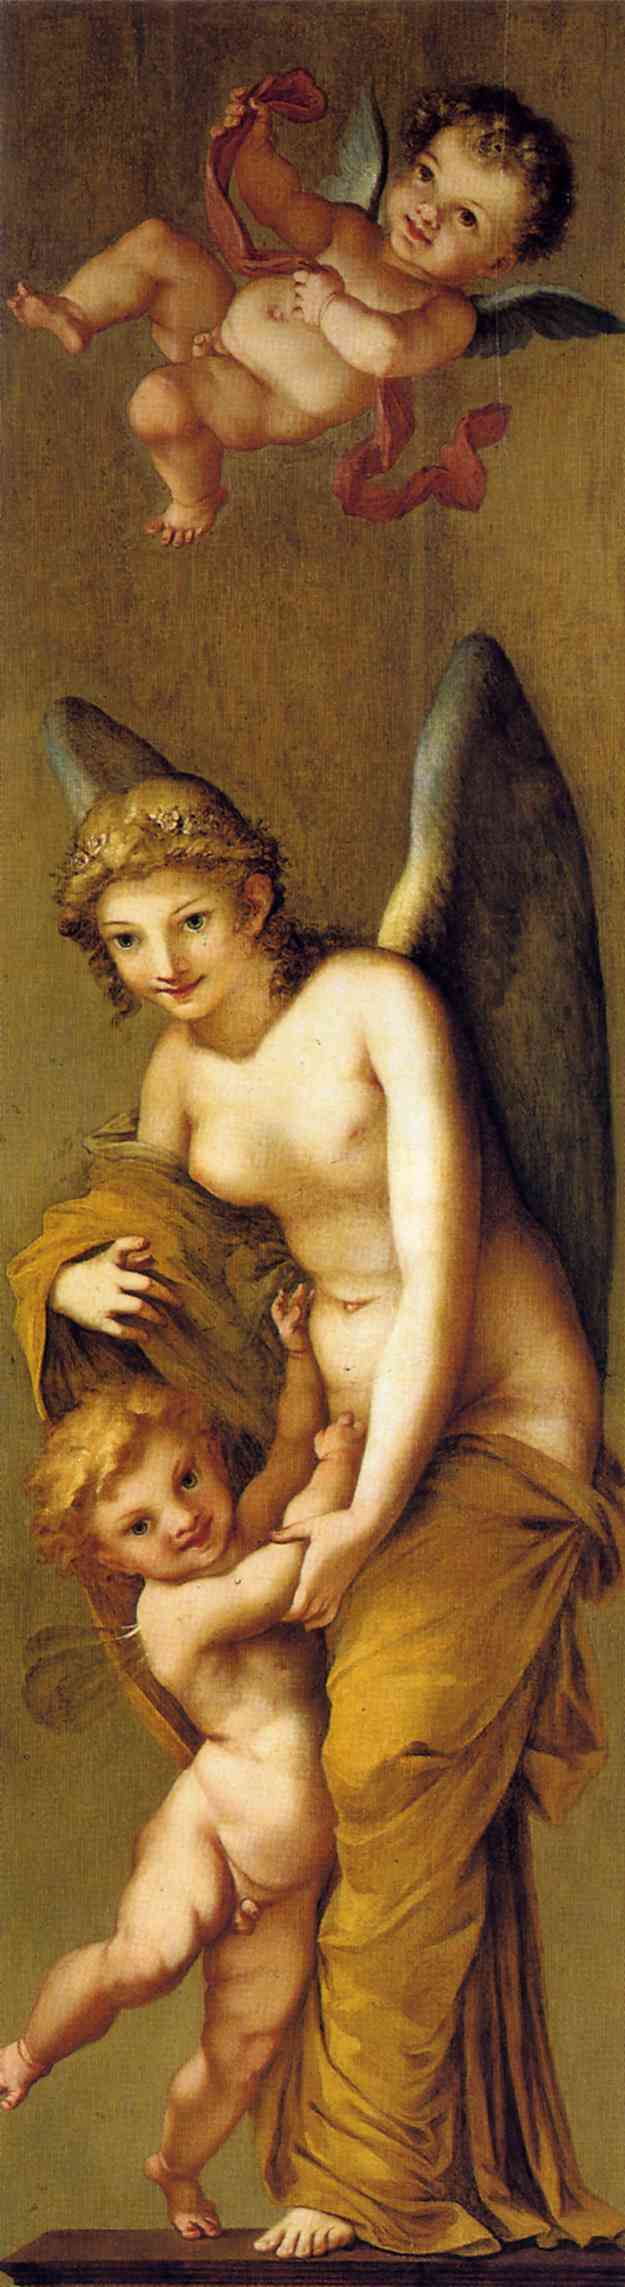 http://uploads8.wikipaintings.org/images/pierre-paul-prud-hon/arts-wealth-pleasure-and-philosophy-pleasure.jpg